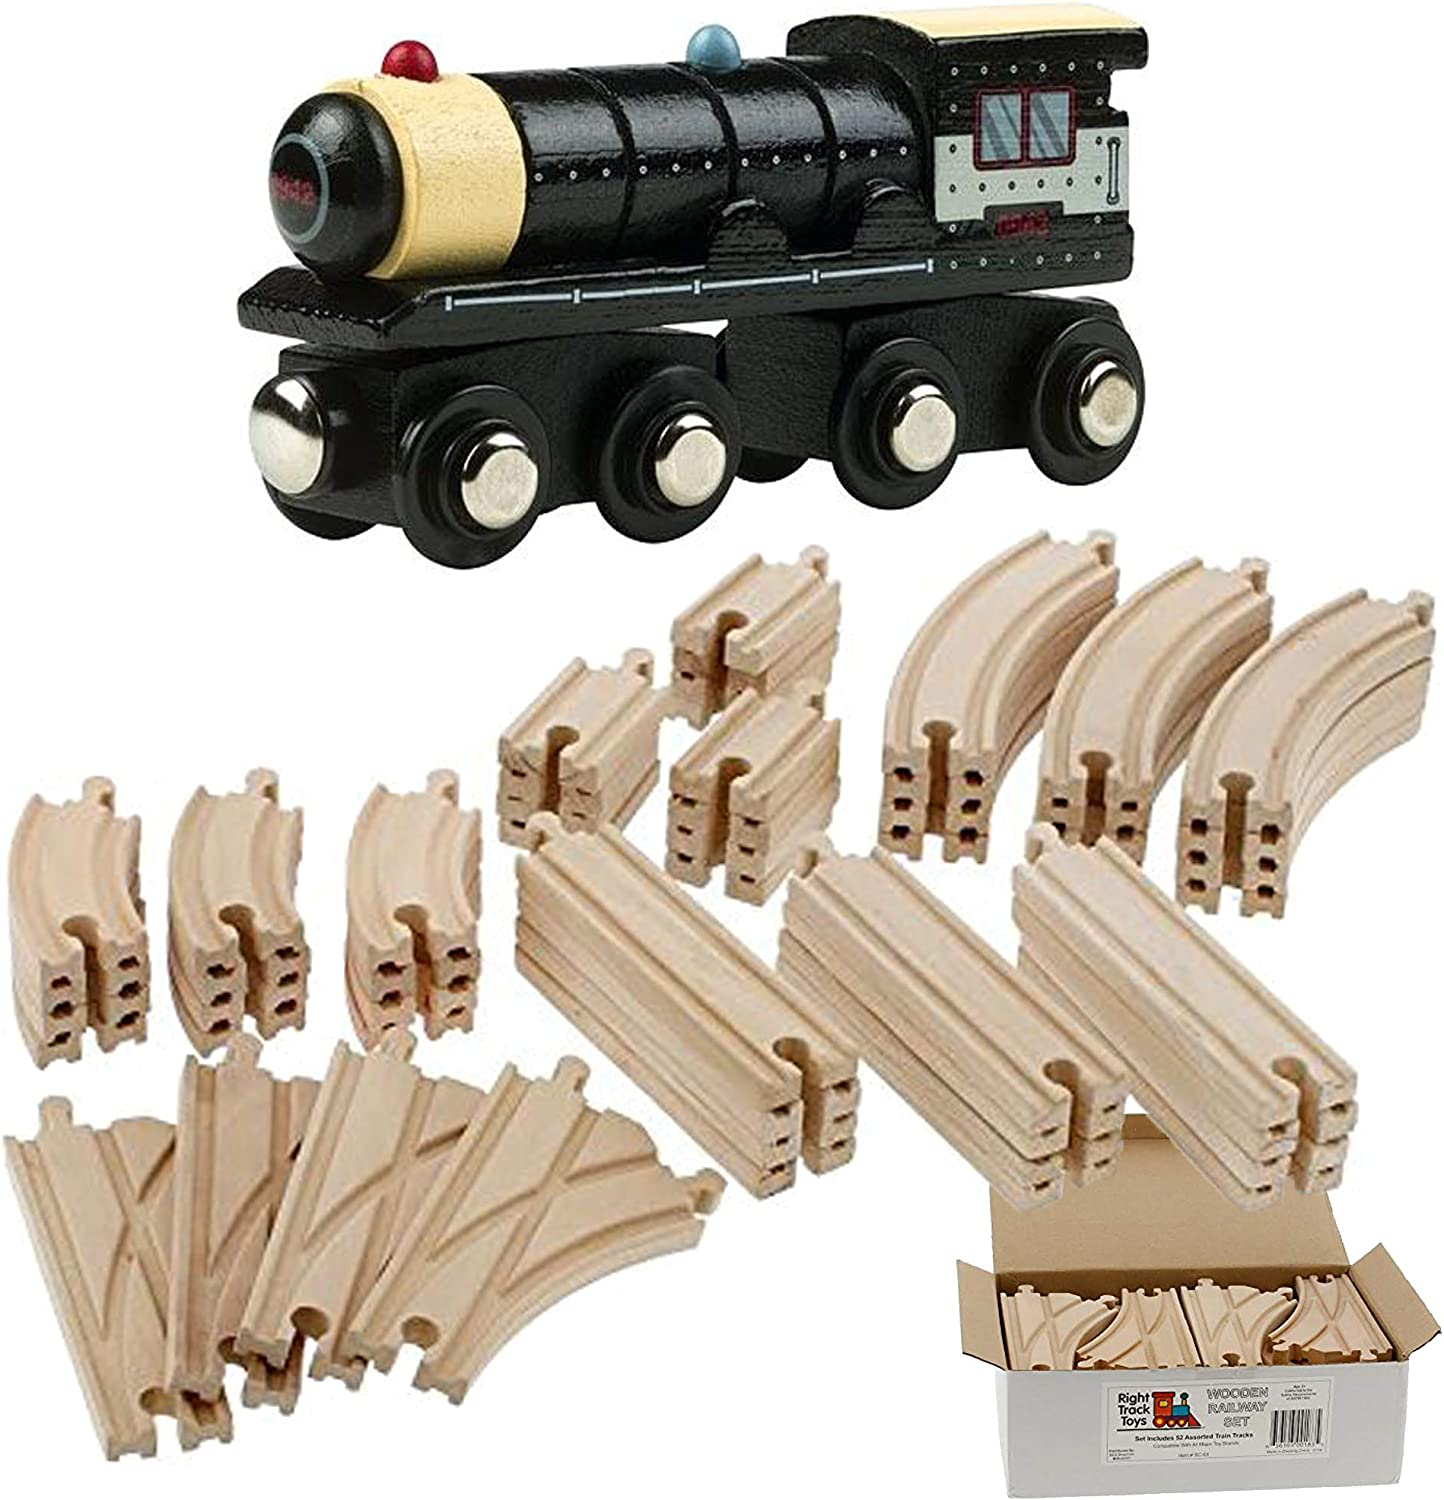 Wood Railway Train Track 6 inch curved Switch Track Toys R Us Imaginarium Brand